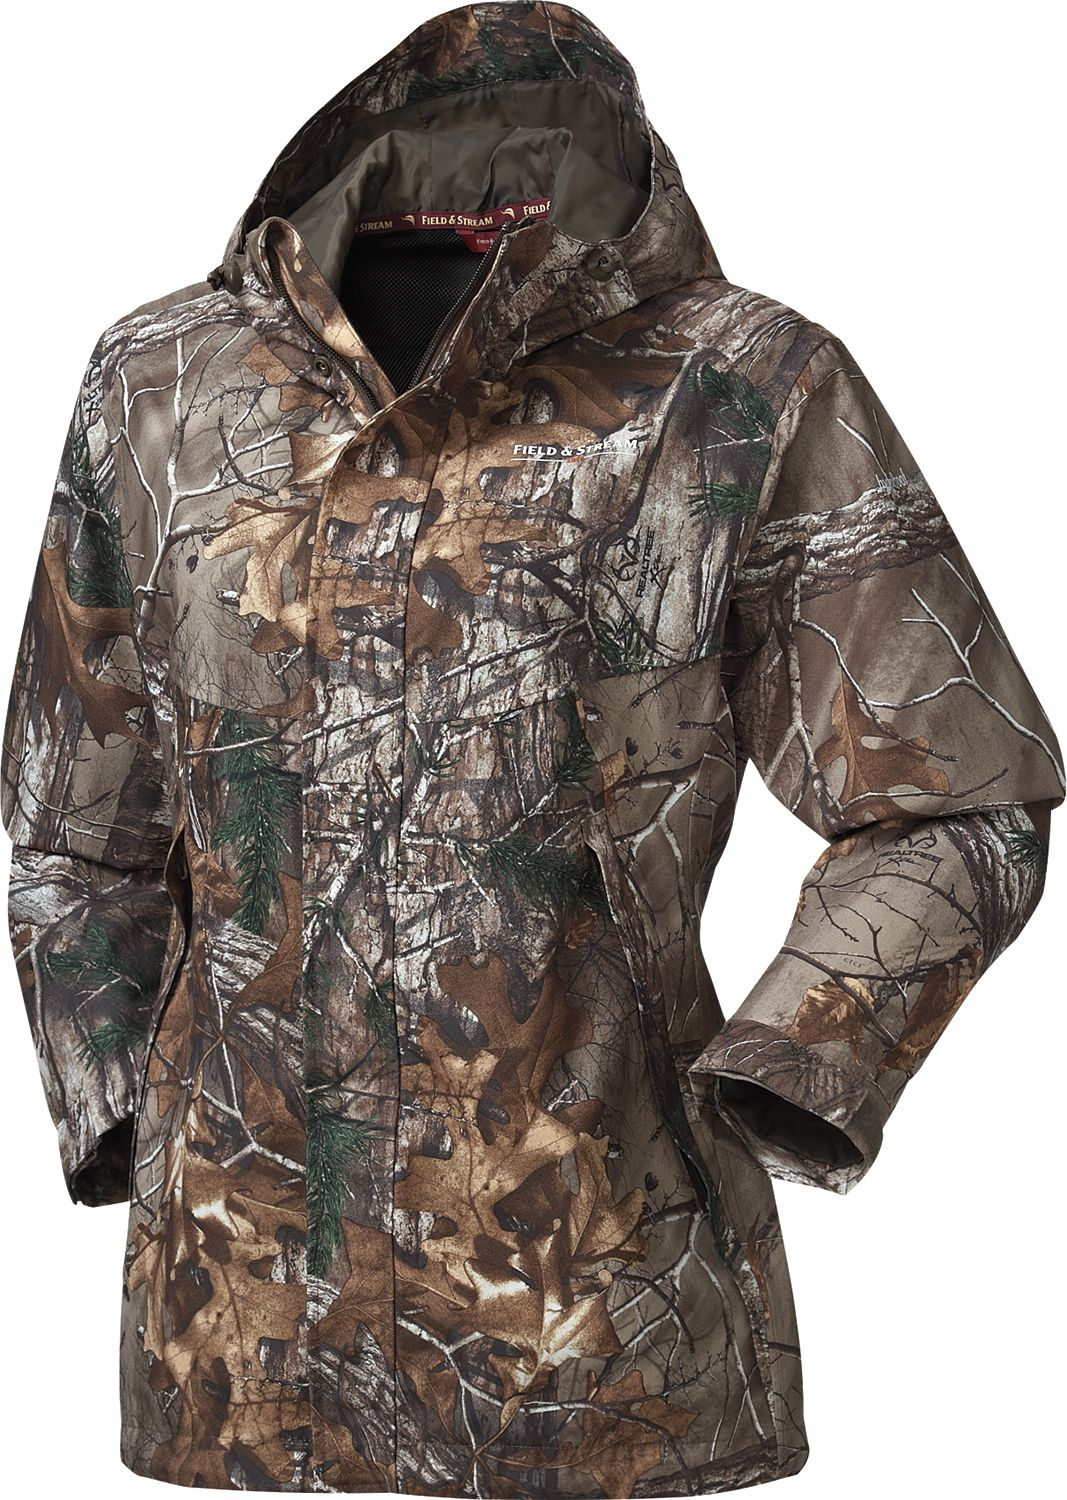 Realtree men's 4 in 1 system parka